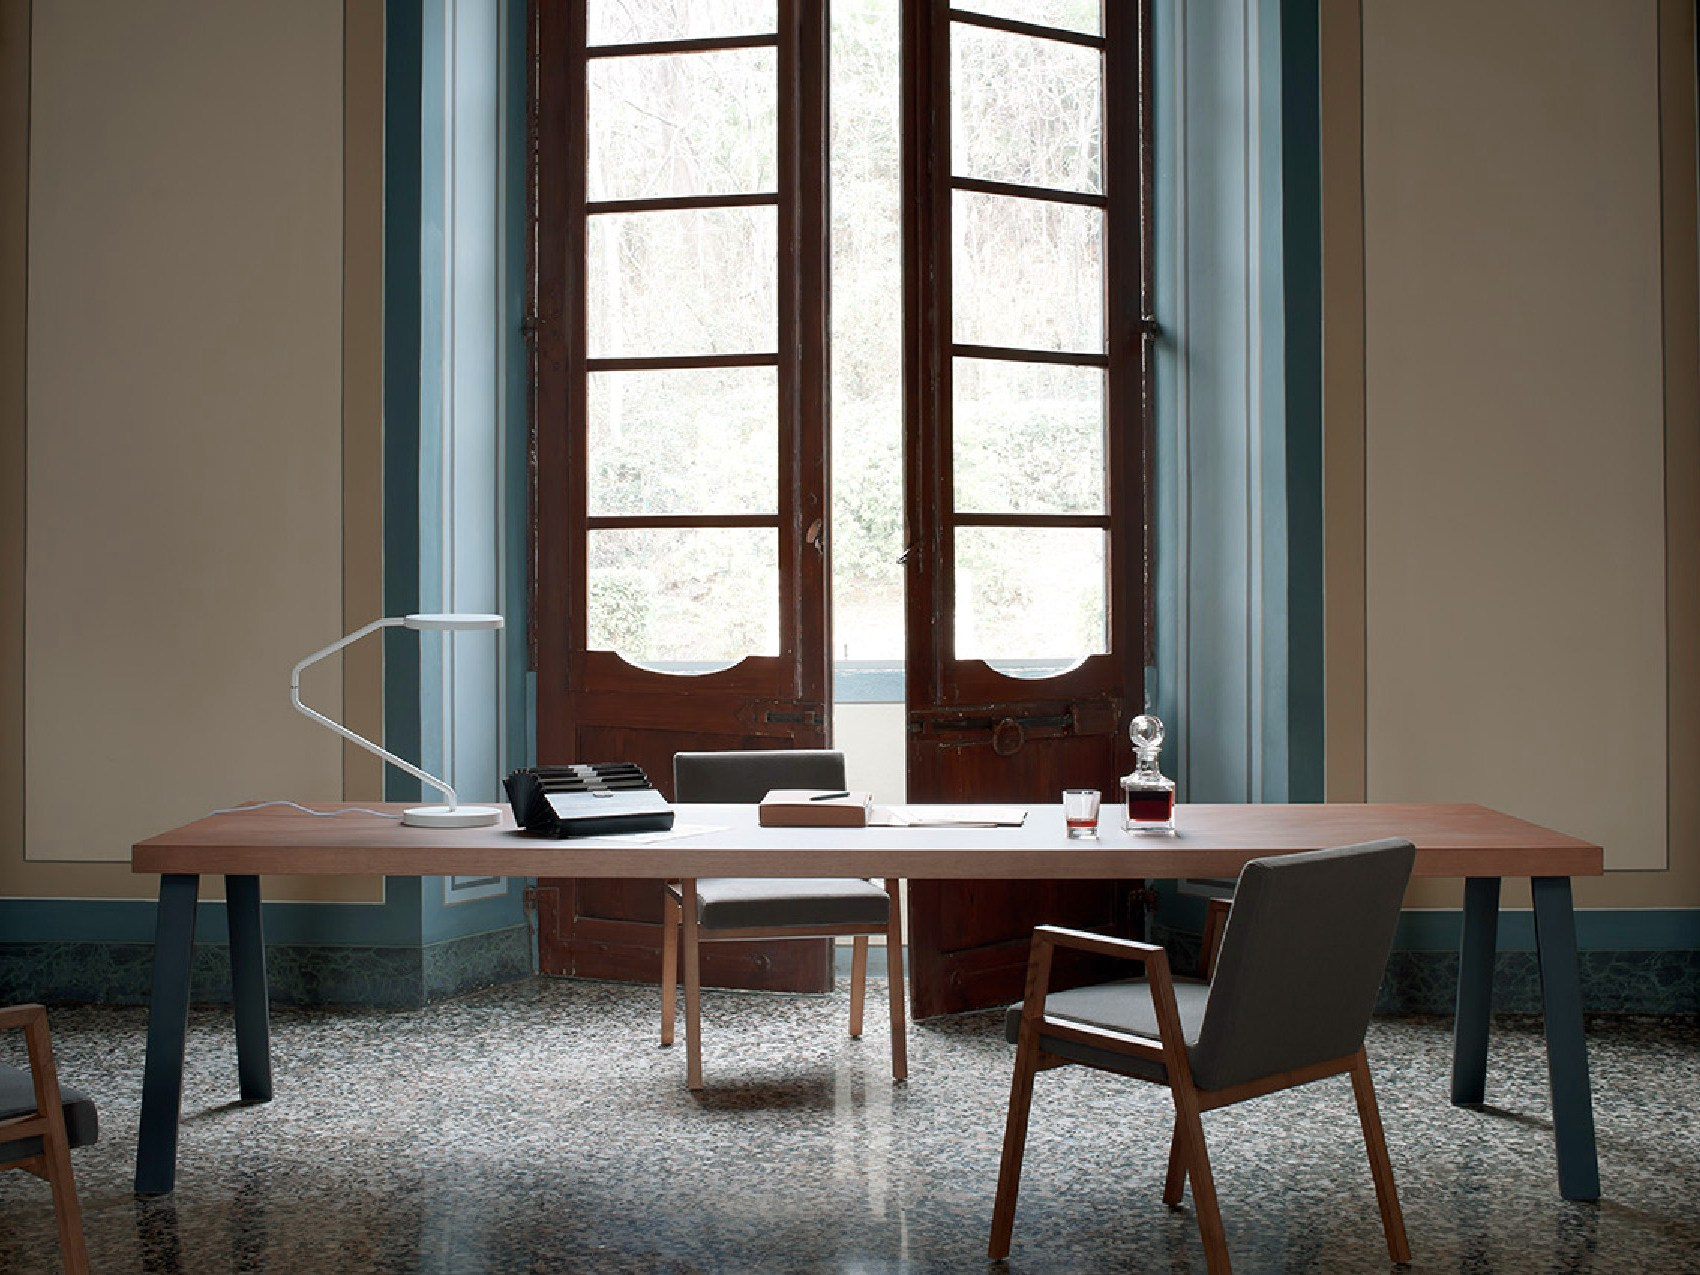 Sectional Rectangular Wooden Office Desk by Pietro Arosio